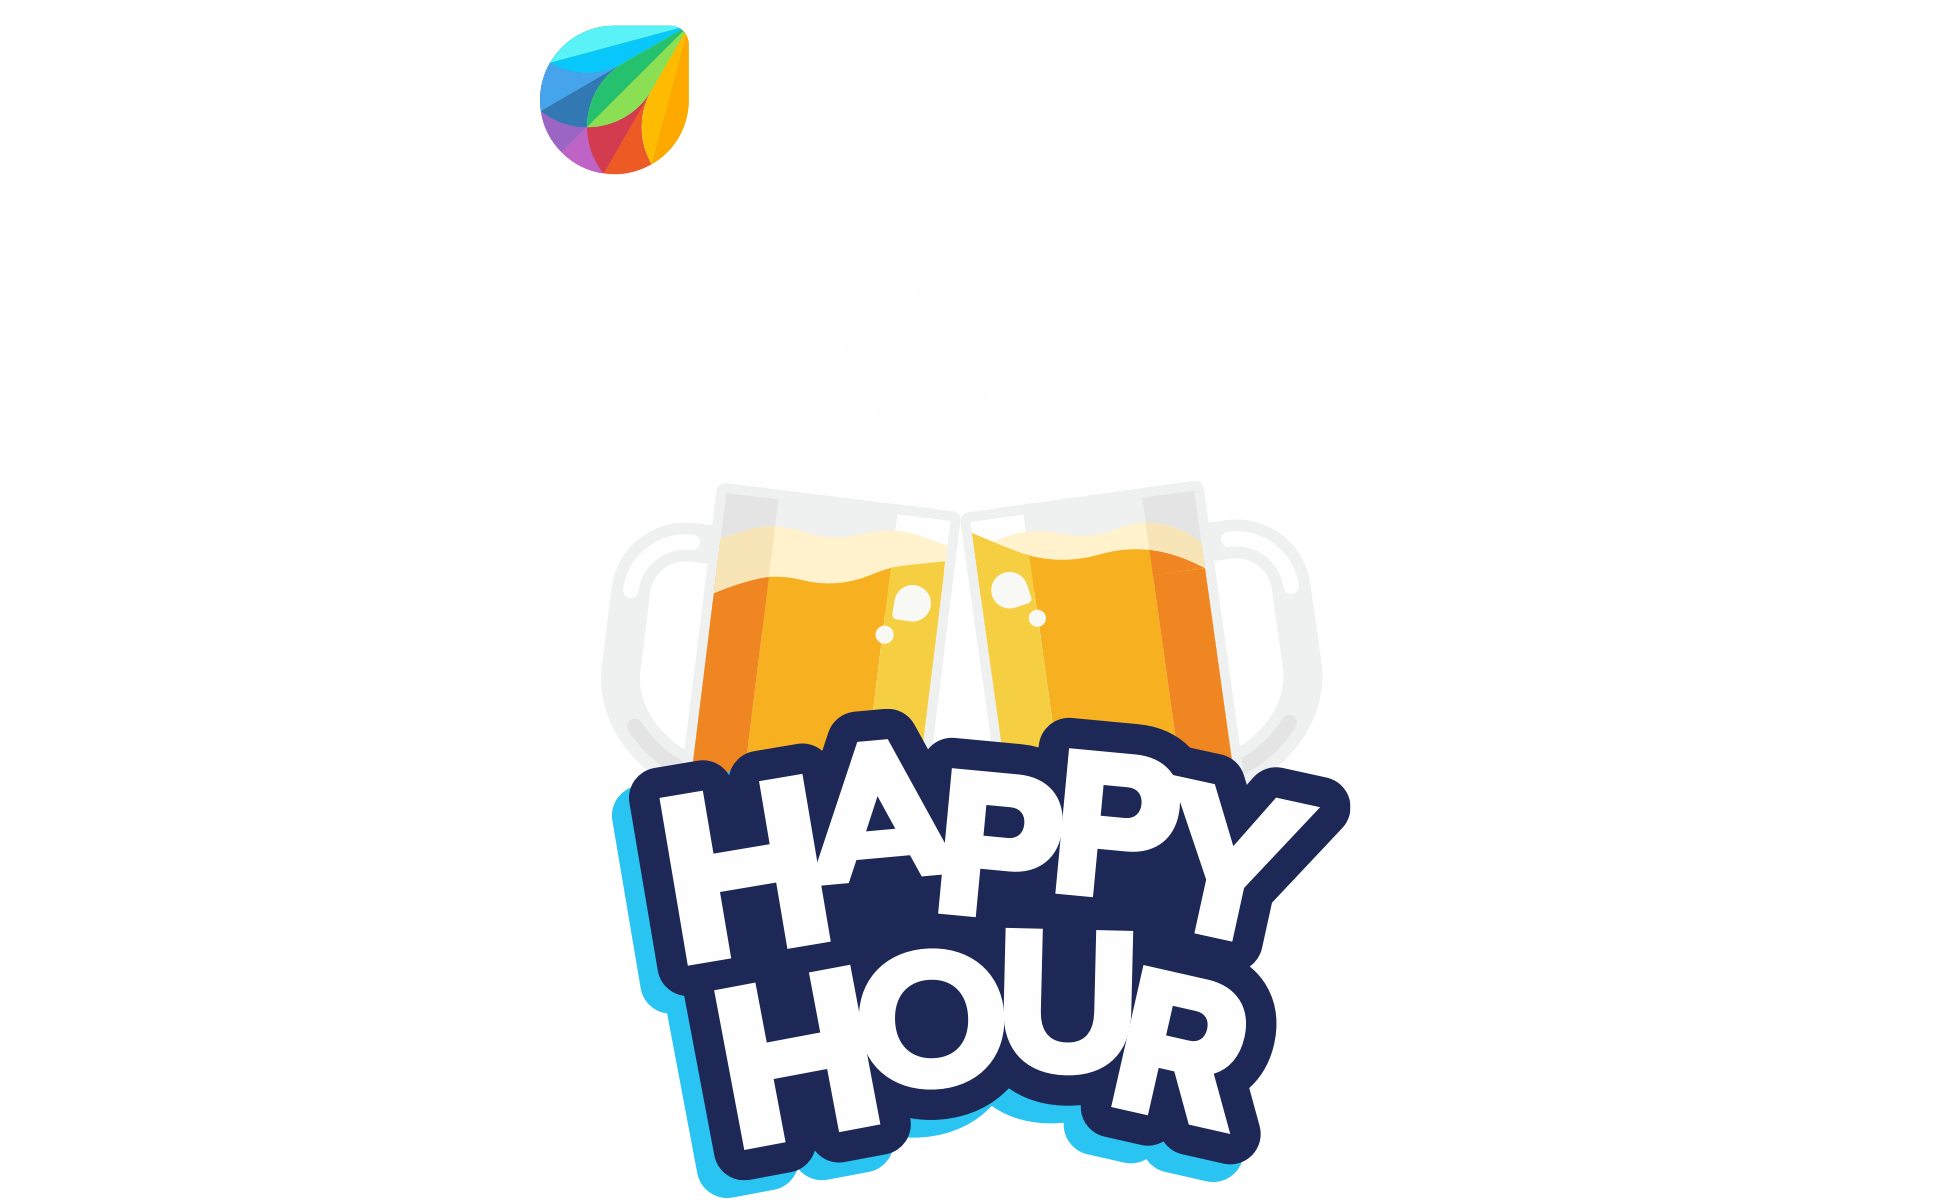 Freshworks Happy Hour 2019.